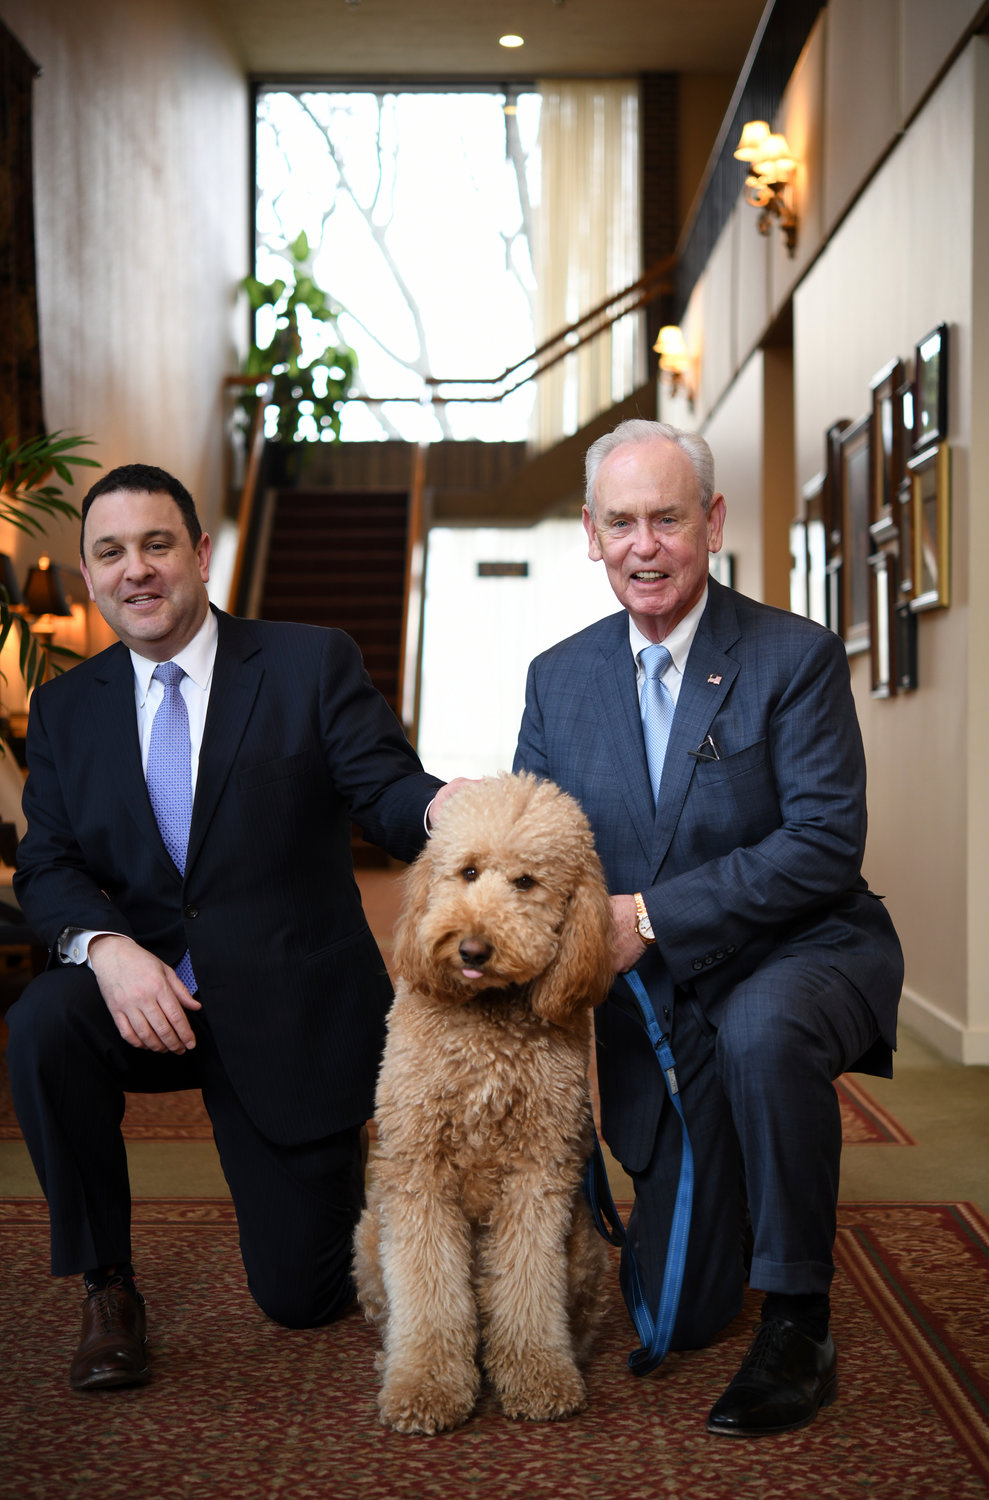 FAMILY BUSINESS — Bill Fay Jr. and Sr. with comfort dog, Teddy on at Callahan, Fay and Caswell Funeral Home in Worcester, Mass. The funeral home marks its 150th anniversary.